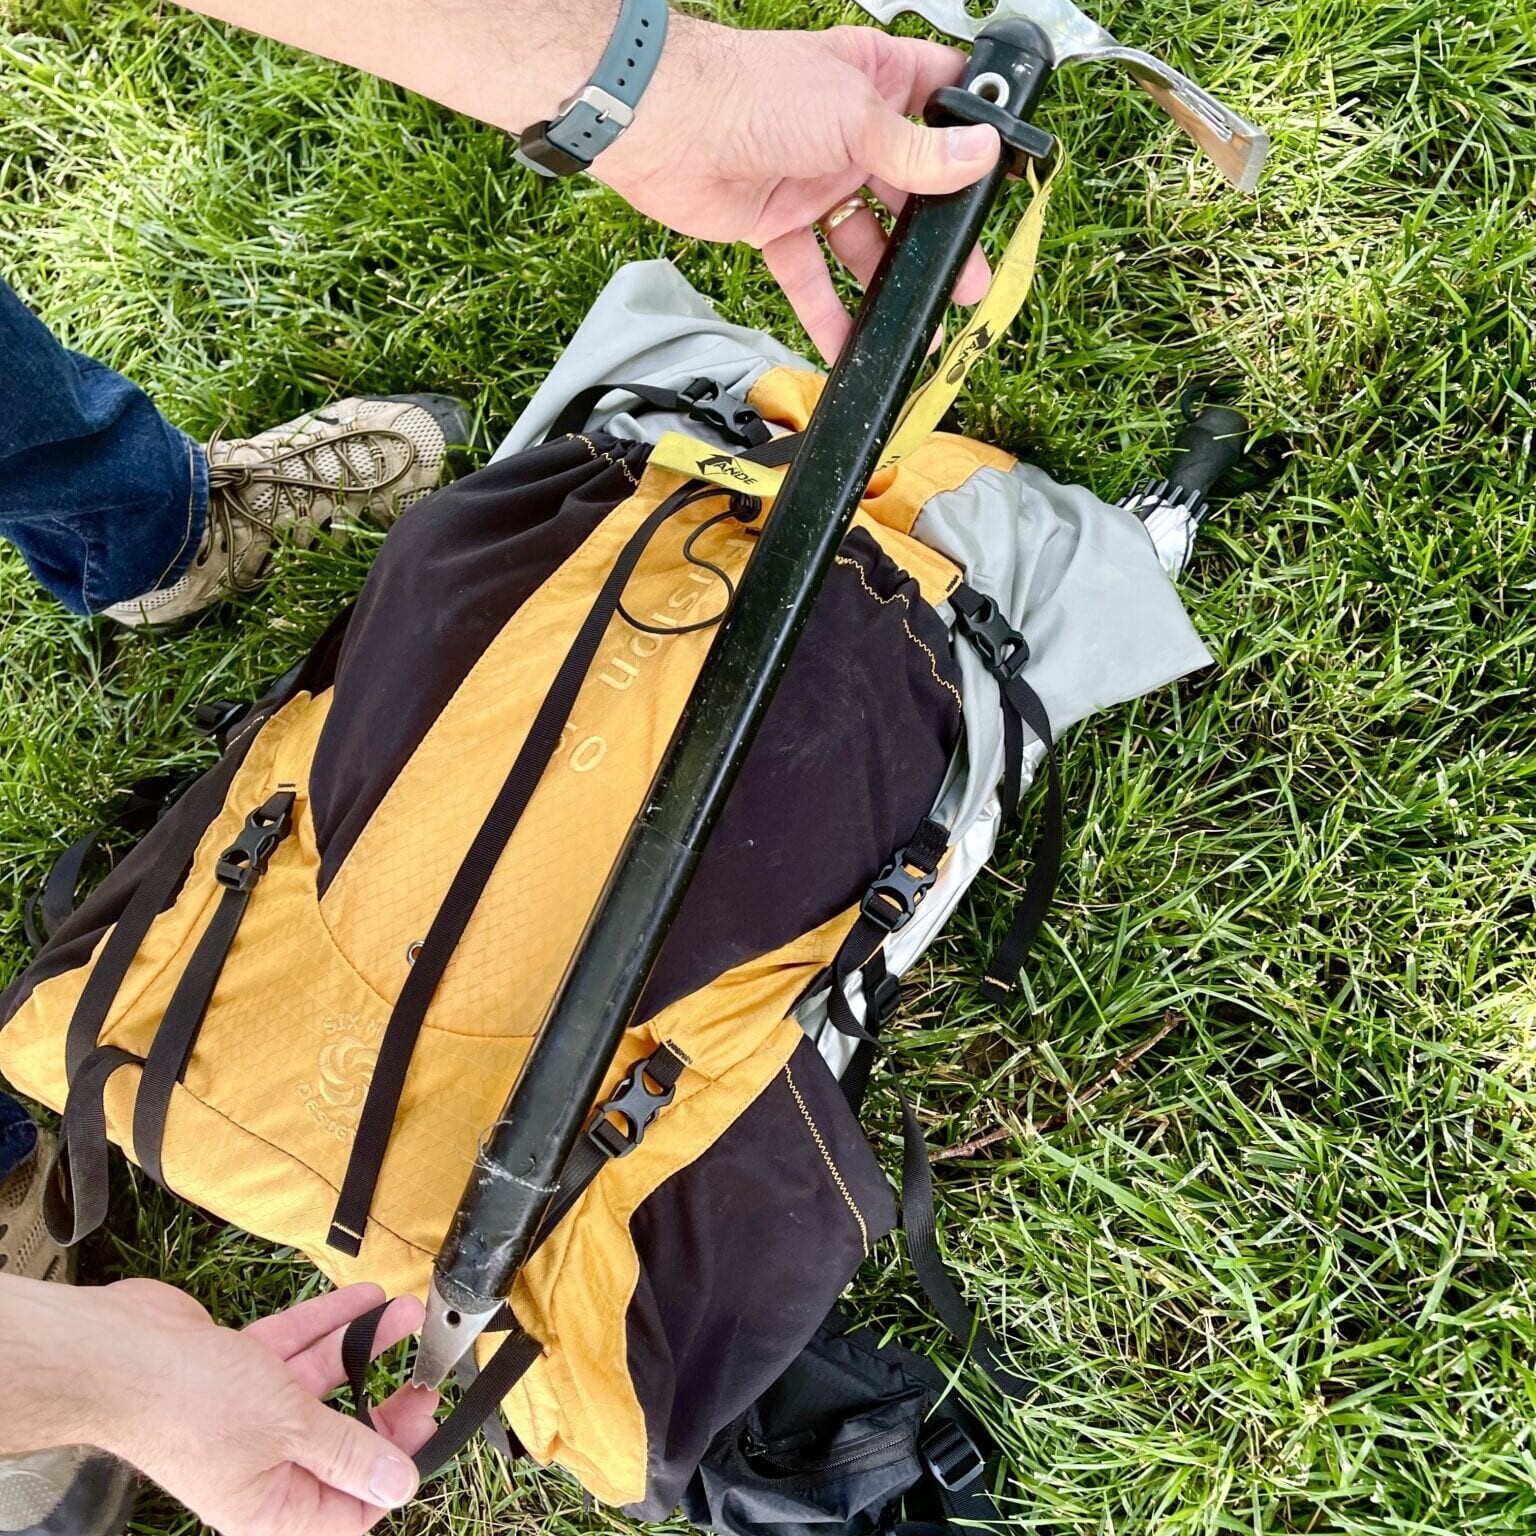 ice axe going through the loop of a backpack